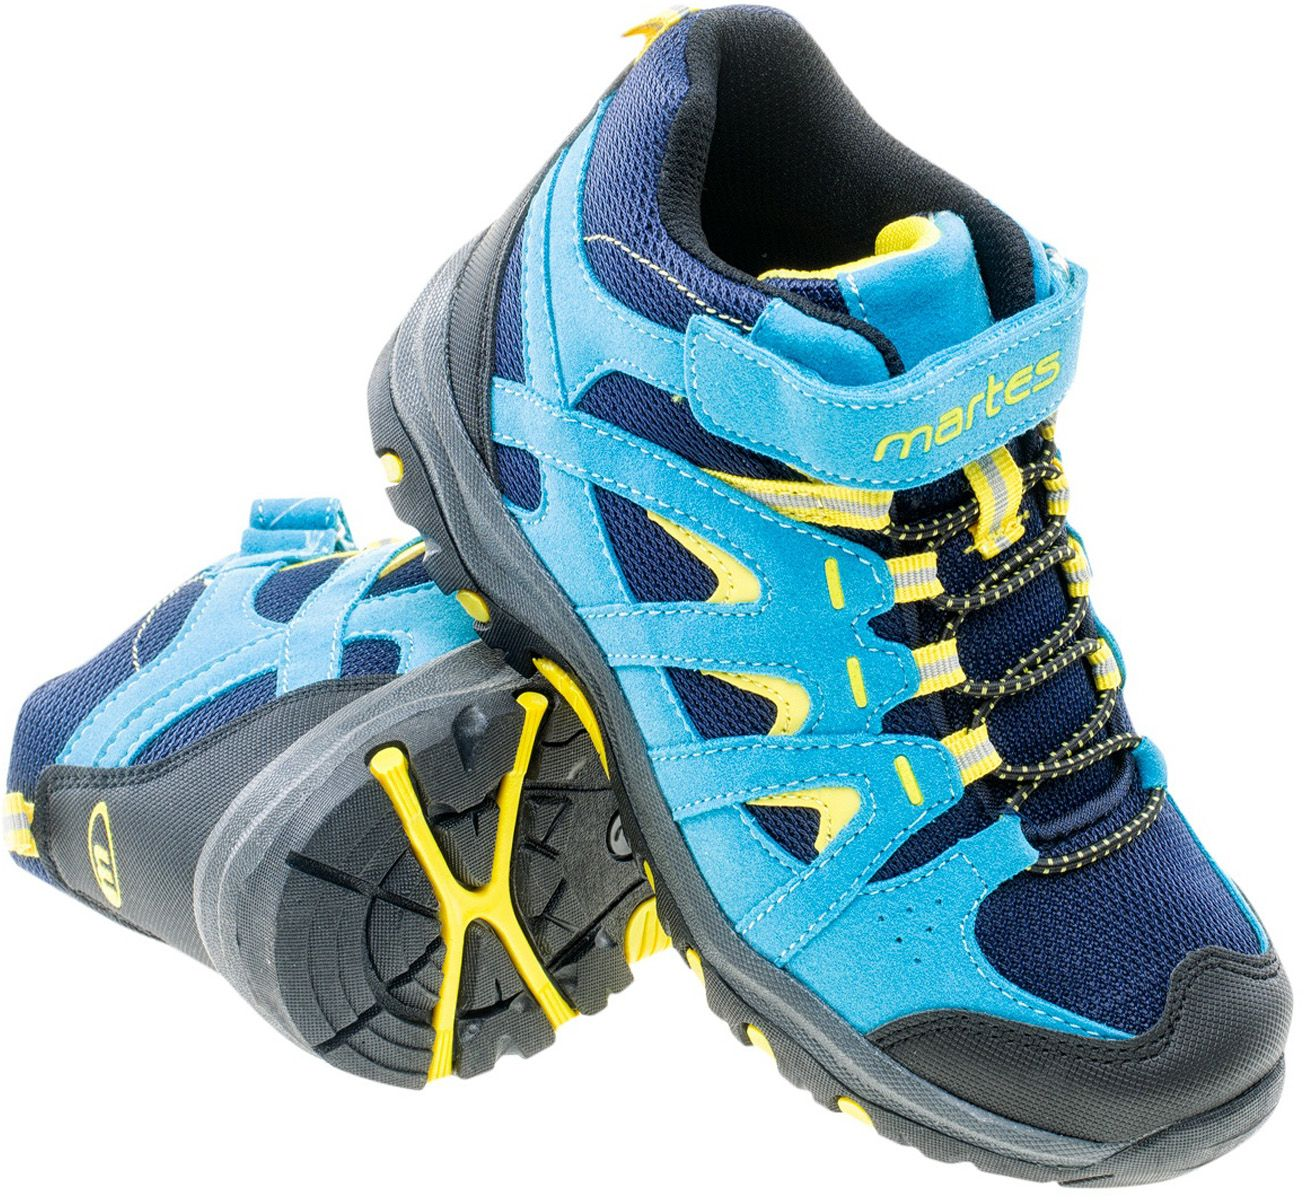 Buty dziecięce Dunland Mid Jr NAVY/LIGHT BLUE/LIME YELLOW roz. 28